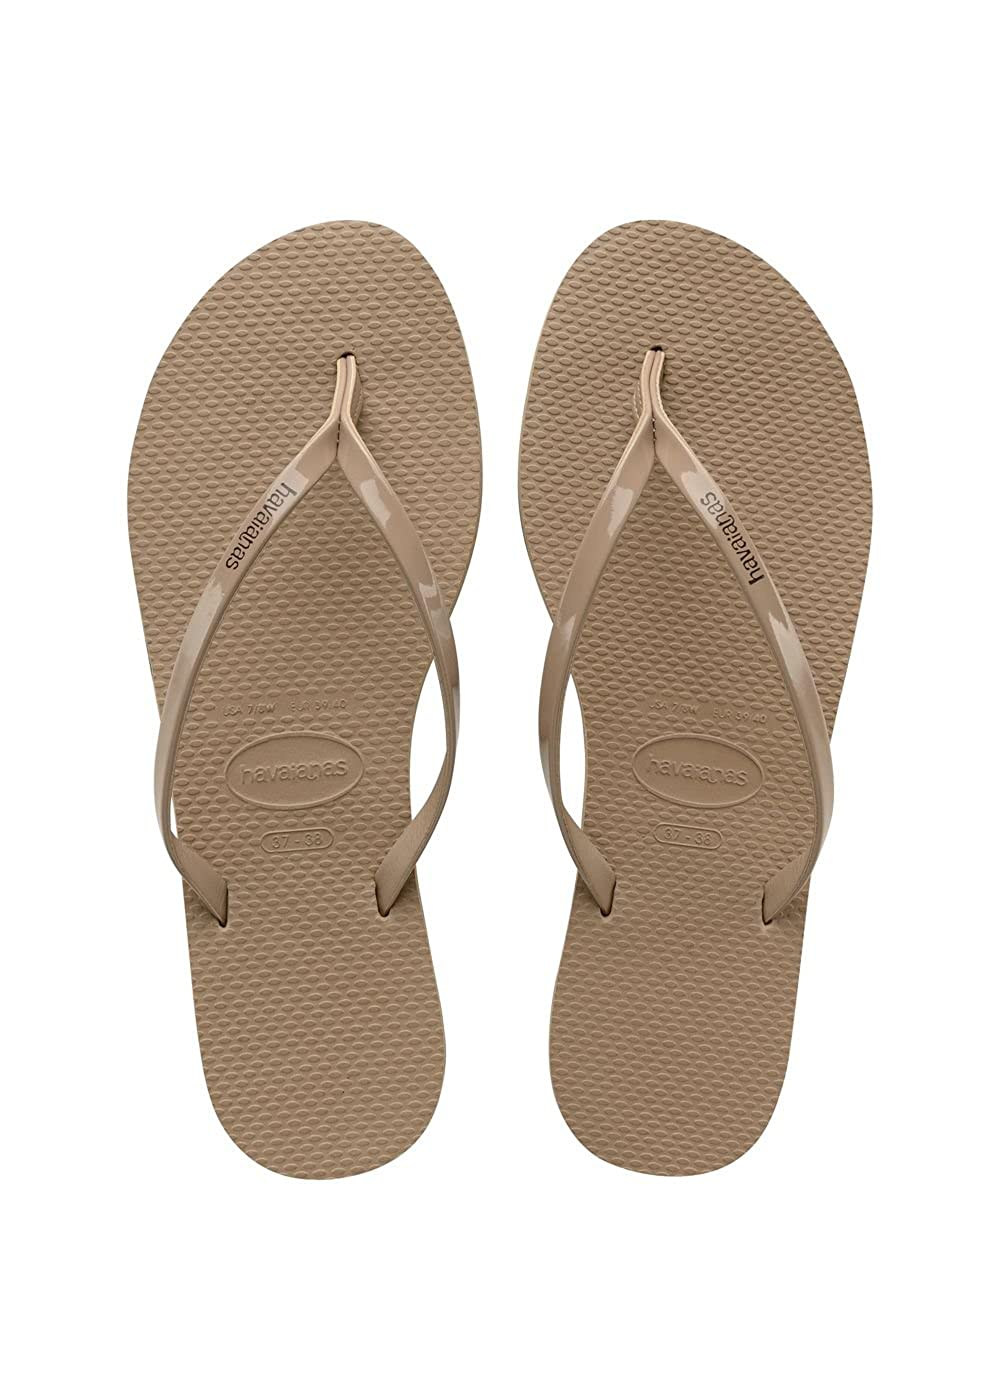 90b05af0e95bf1 Havaianas You Metallic Women s Flip Flops  Amazon.co.uk  Shoes   Bags